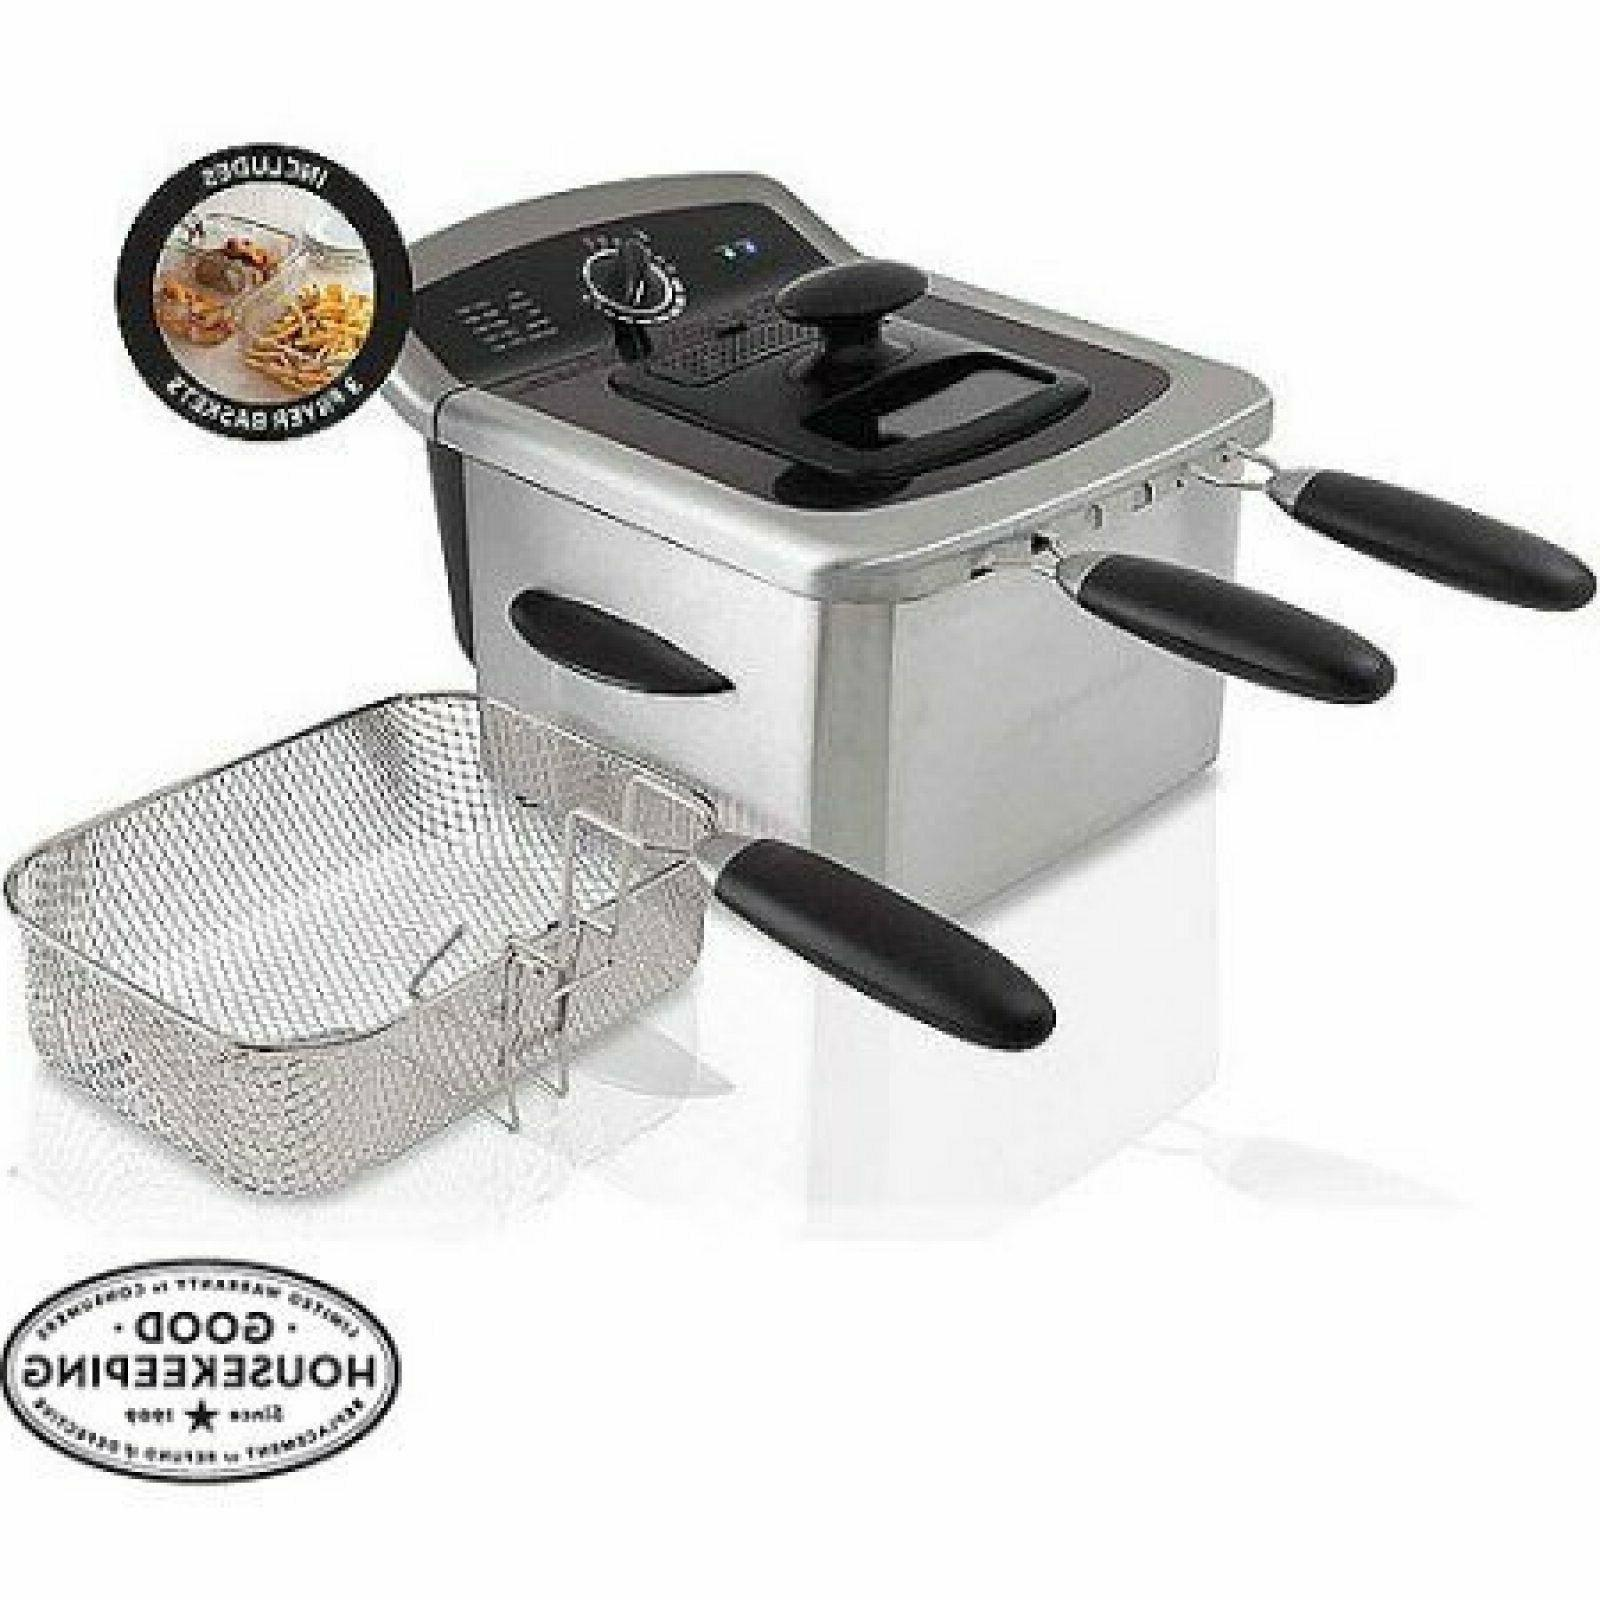 Farberware 4L Deep Fryer Stainless Steel With Charcoal Air F